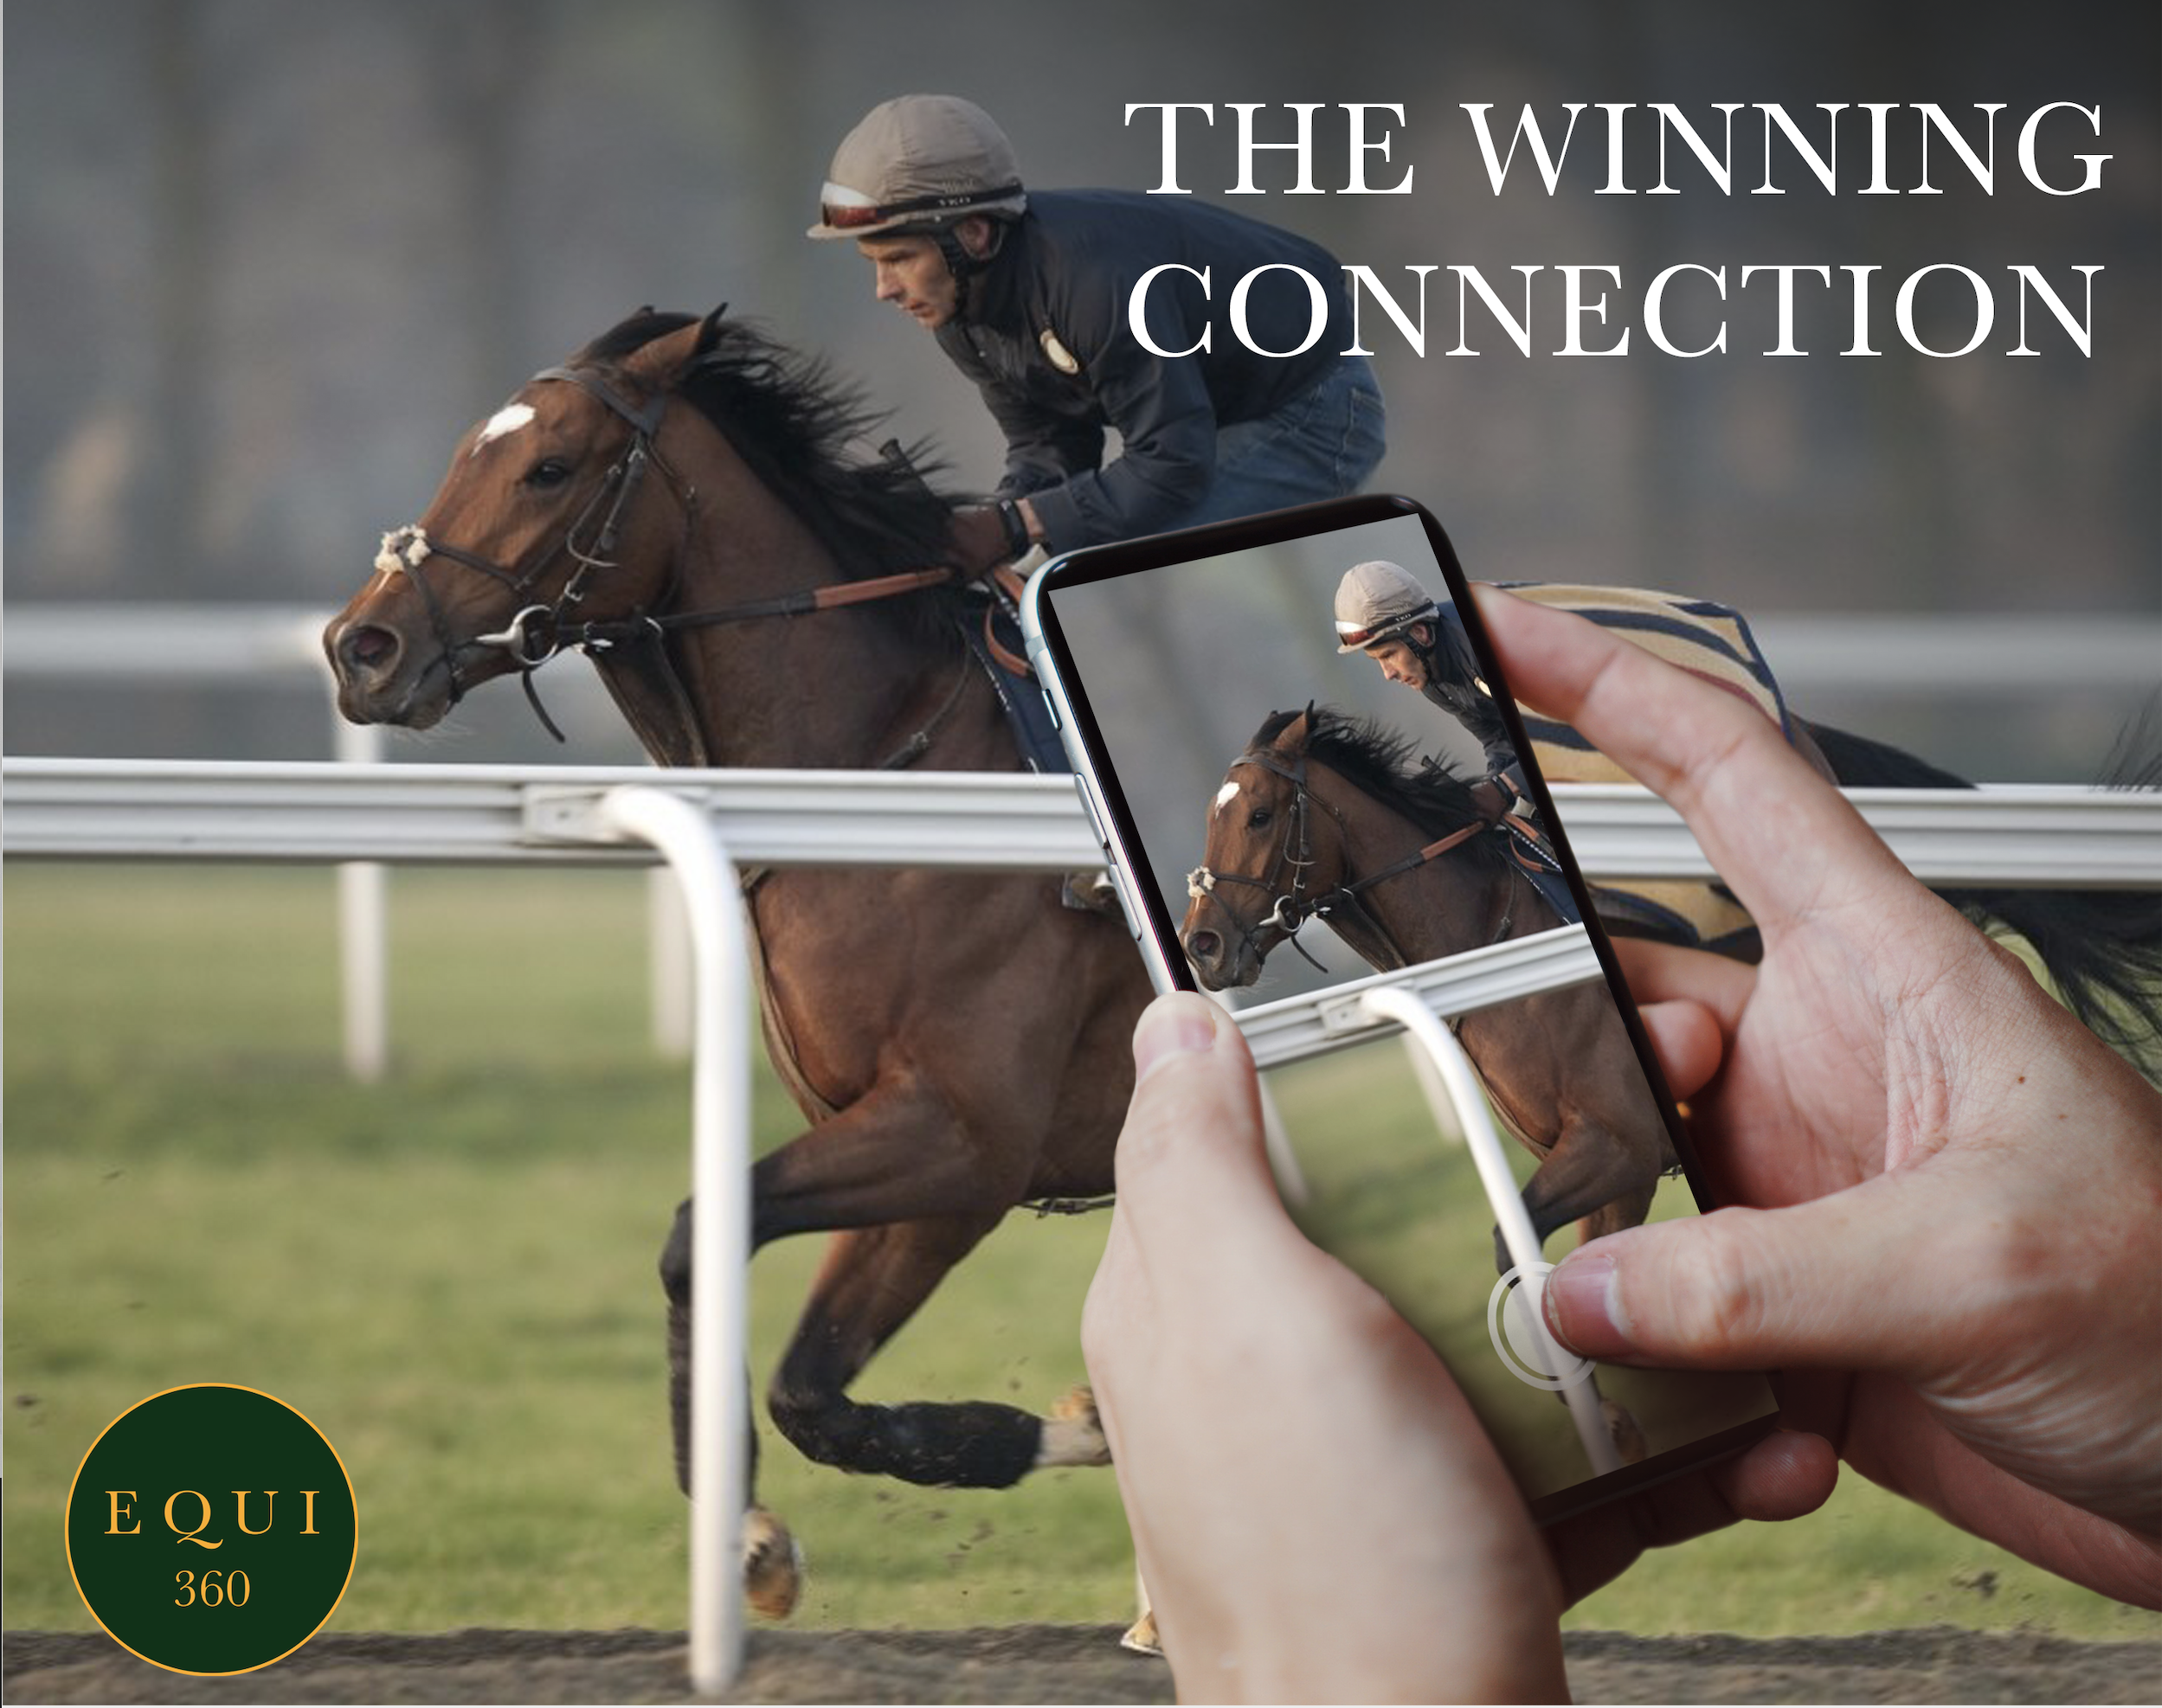 Have you tried the Equi360 App